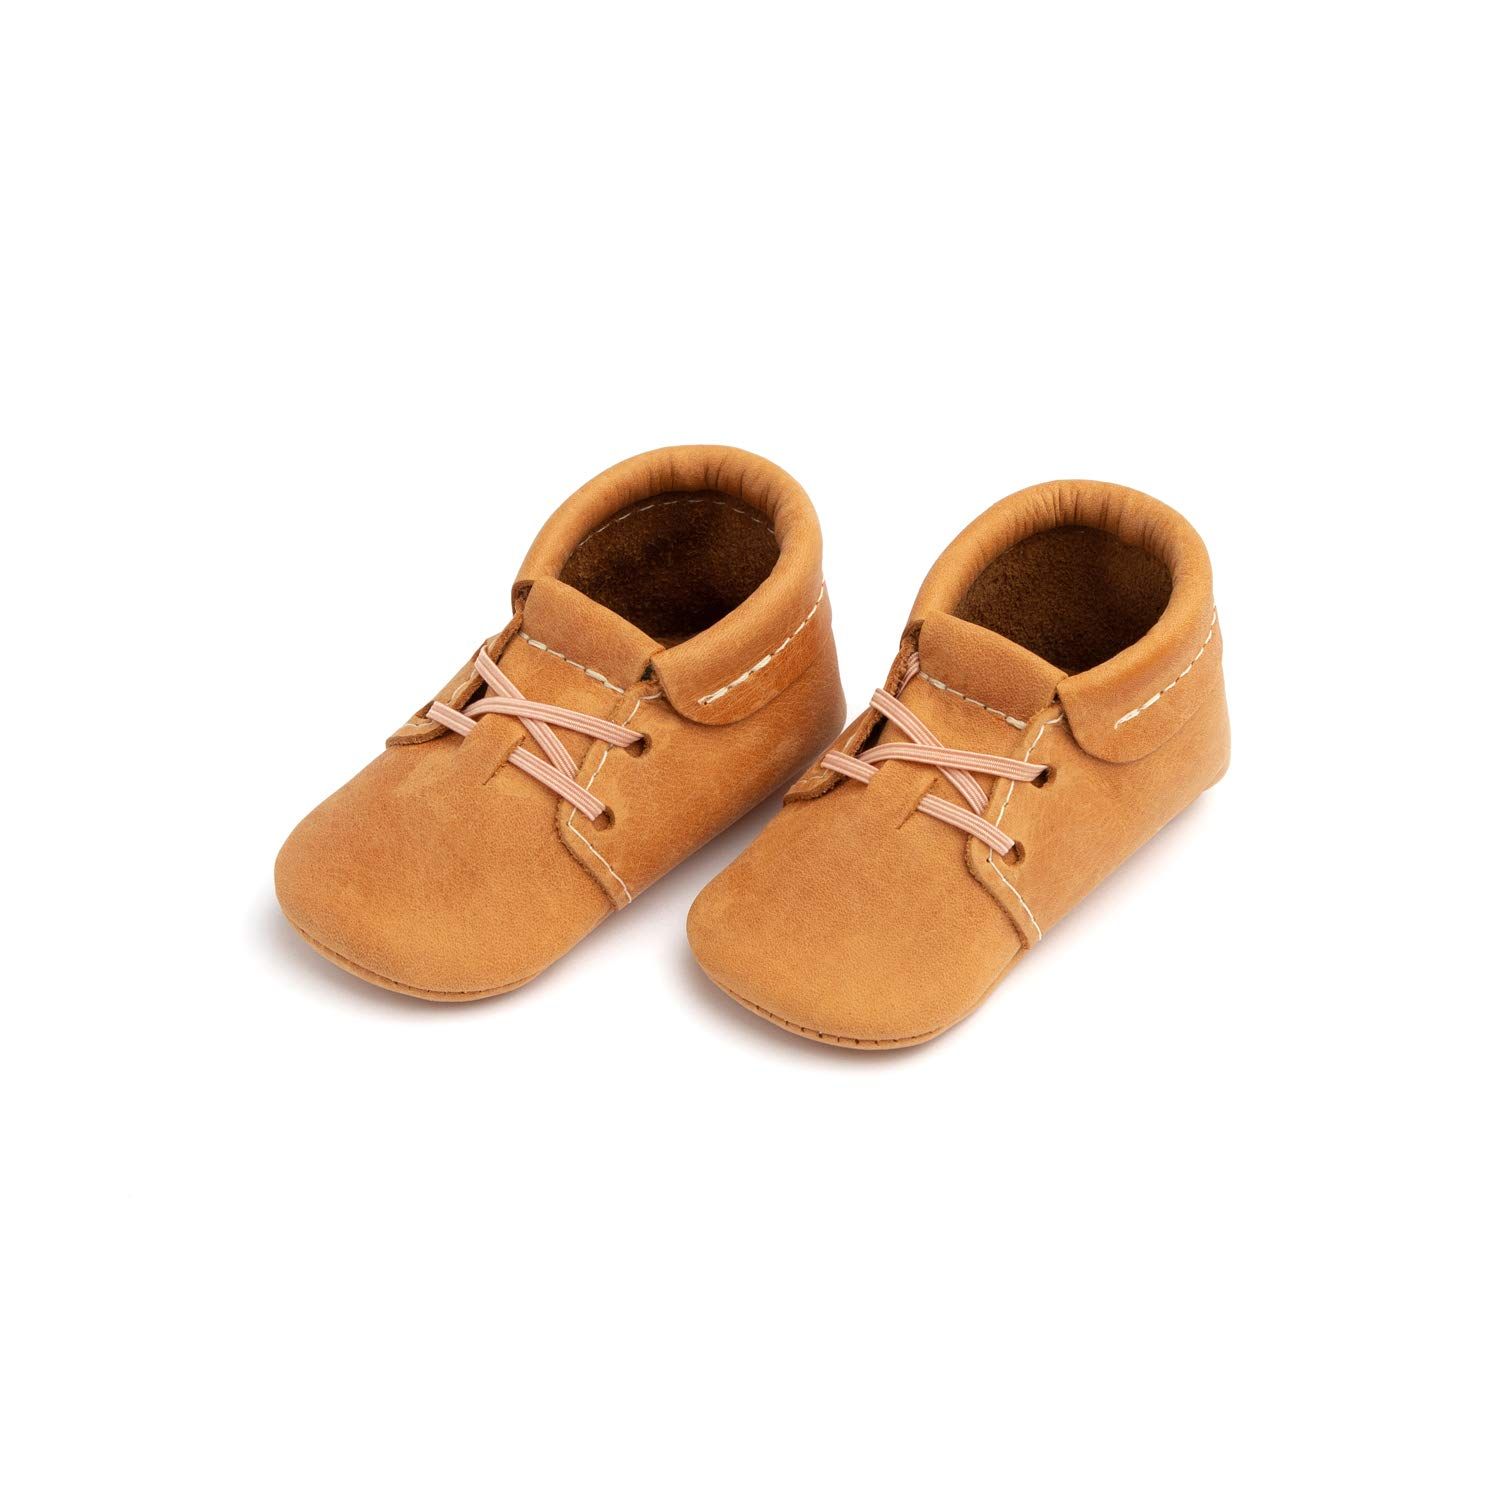 Freshly Picked - Soft Sole Leather Oxford Moccasins - Baby Girl Boy Shoes Size 1 Cedar Tan by Freshly Picked